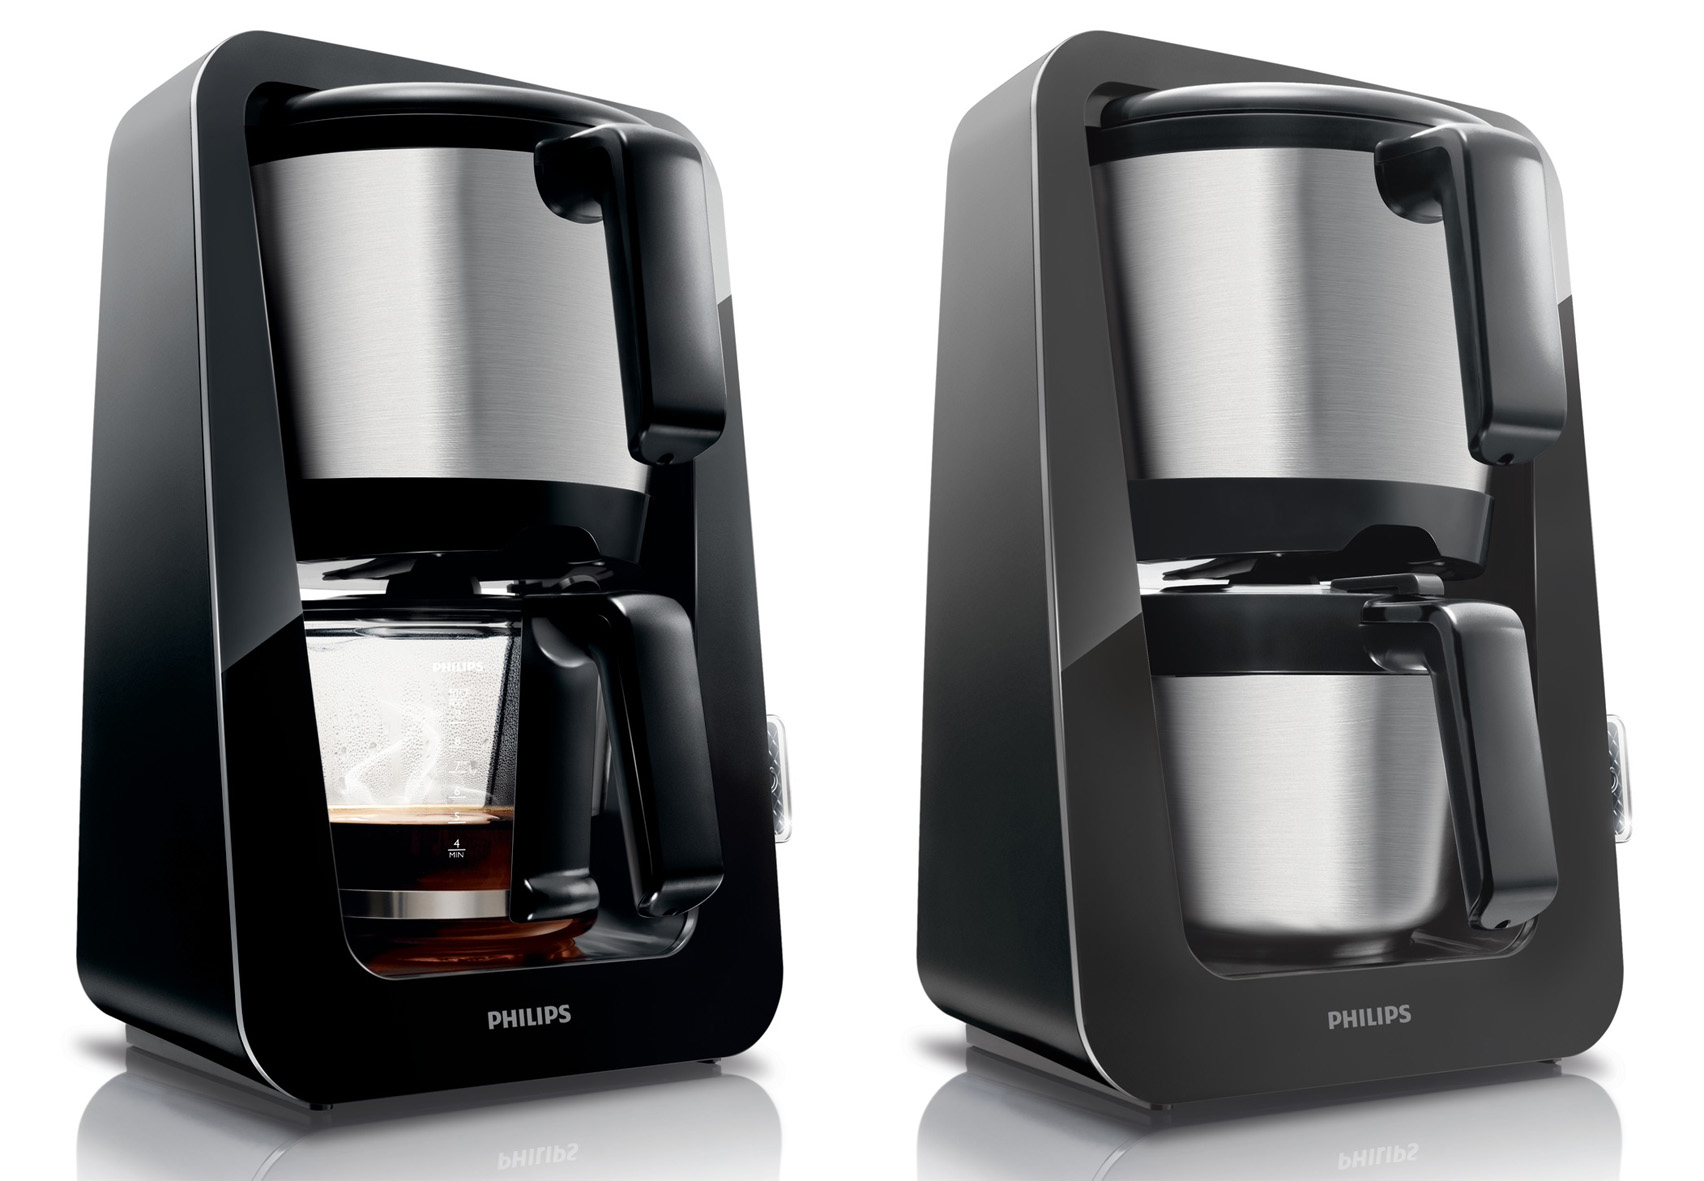 philips avance hd kaffeemaschine 2 farben mit glas oder thermokanne. Black Bedroom Furniture Sets. Home Design Ideas